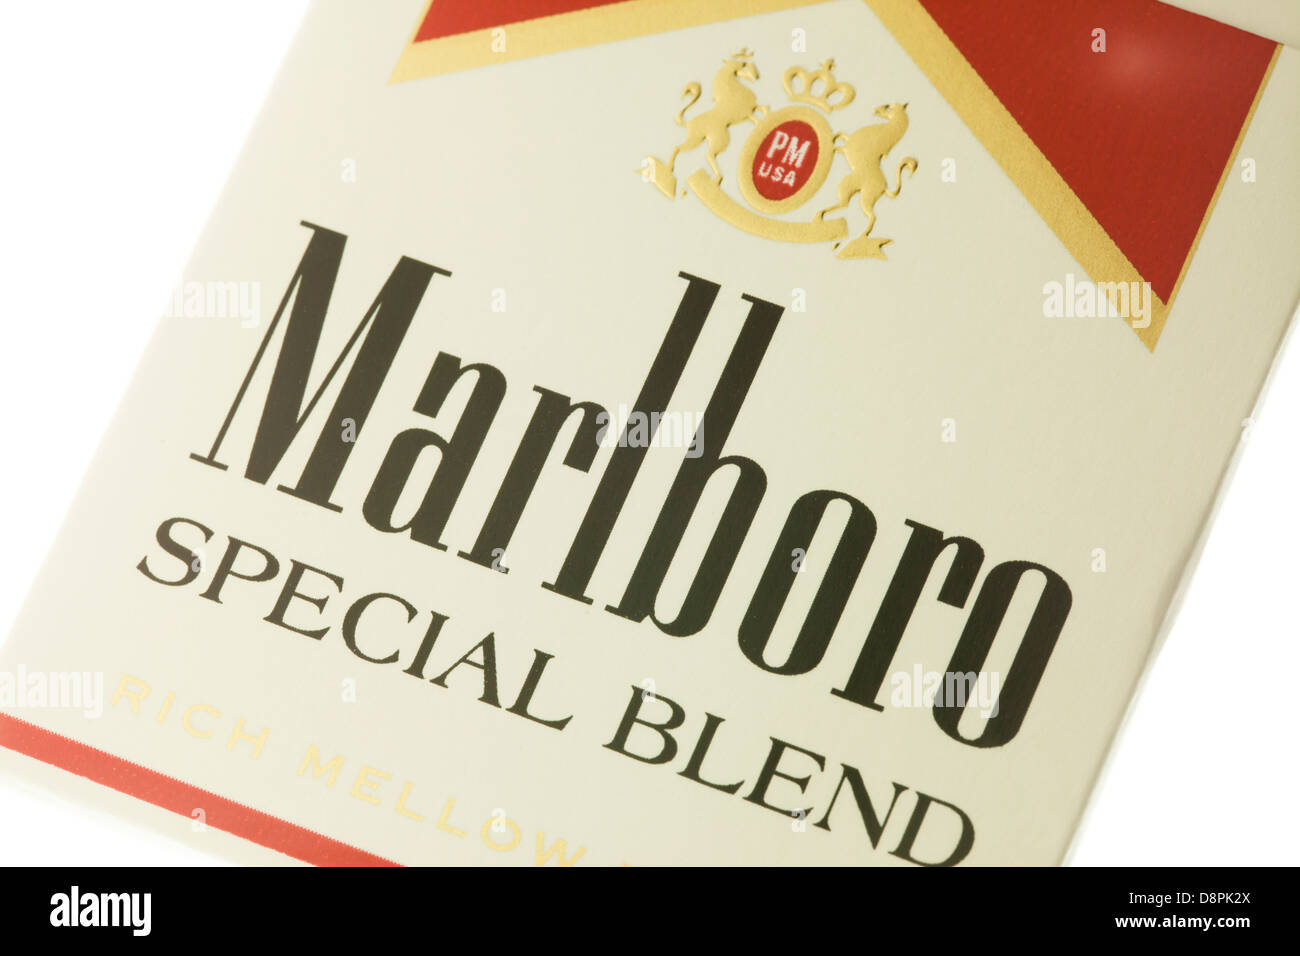 Carton of cigarettes Marlboro NYC